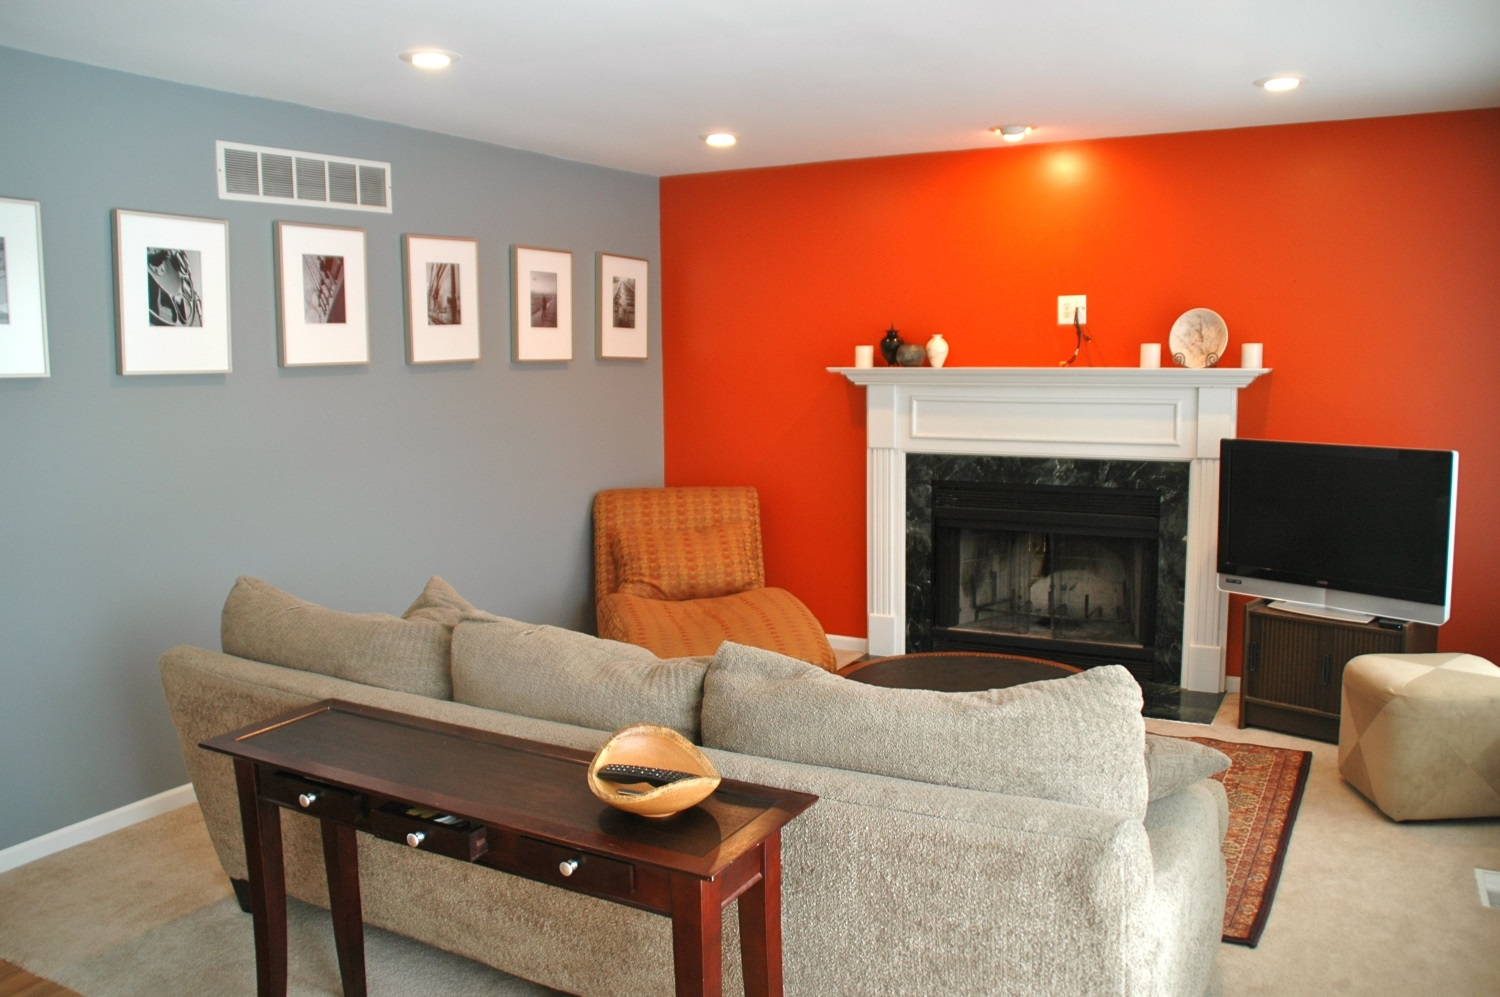 Partly orange living room style